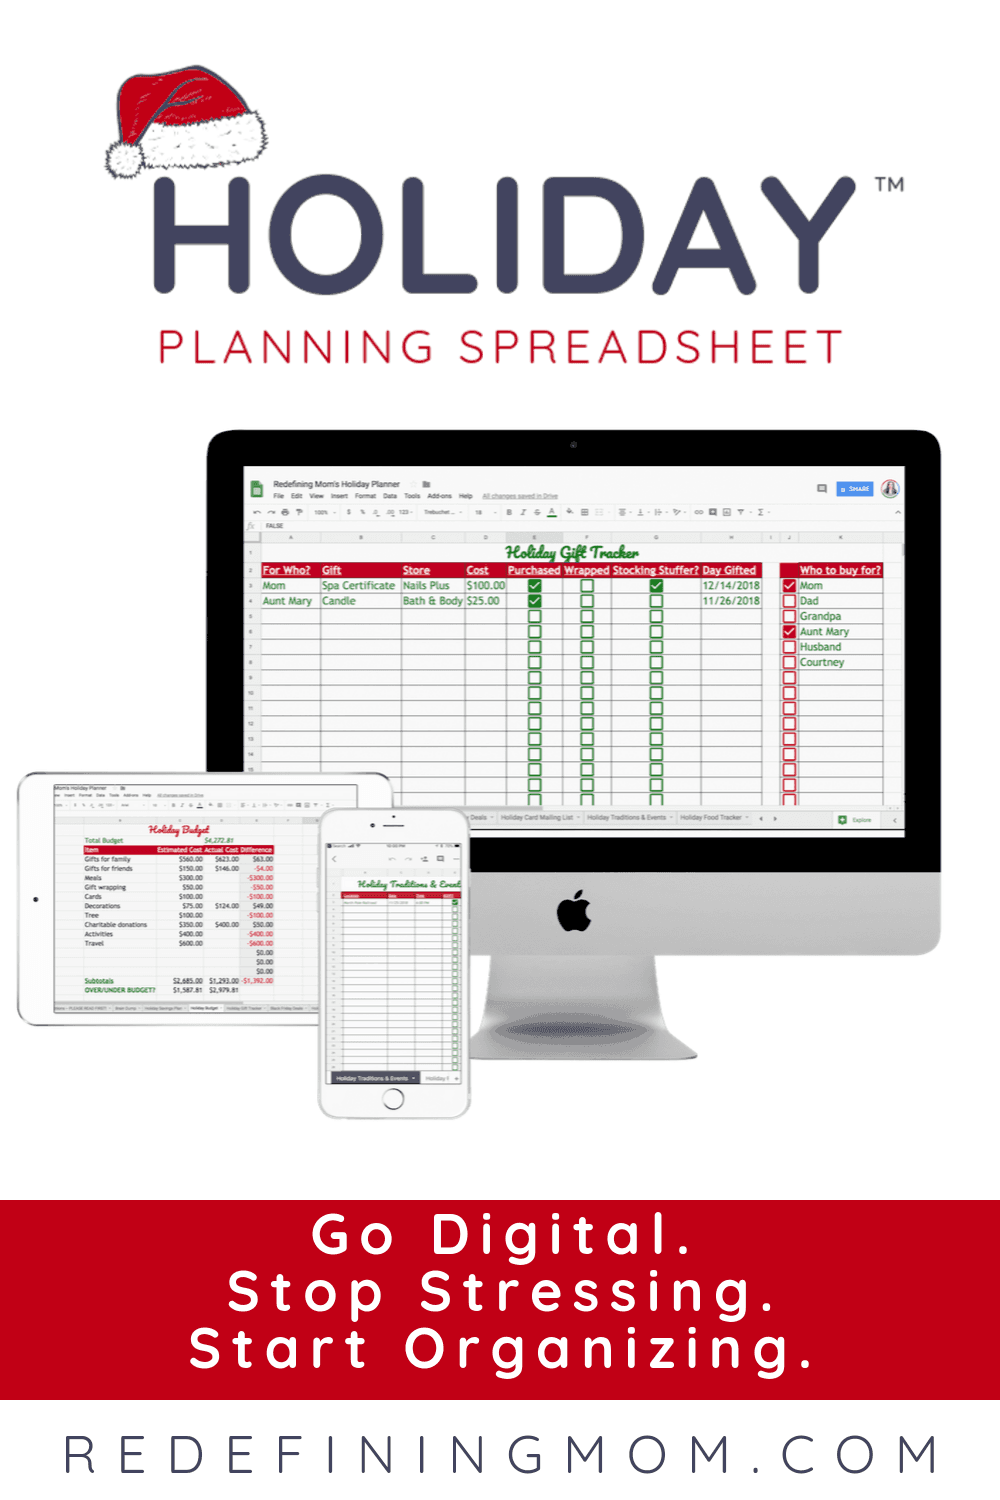 Organizing for the holidays doesn't have to be hard! Why not go digital with the perfect holiday planner spreadsheet? The holiday planning has never been easier!